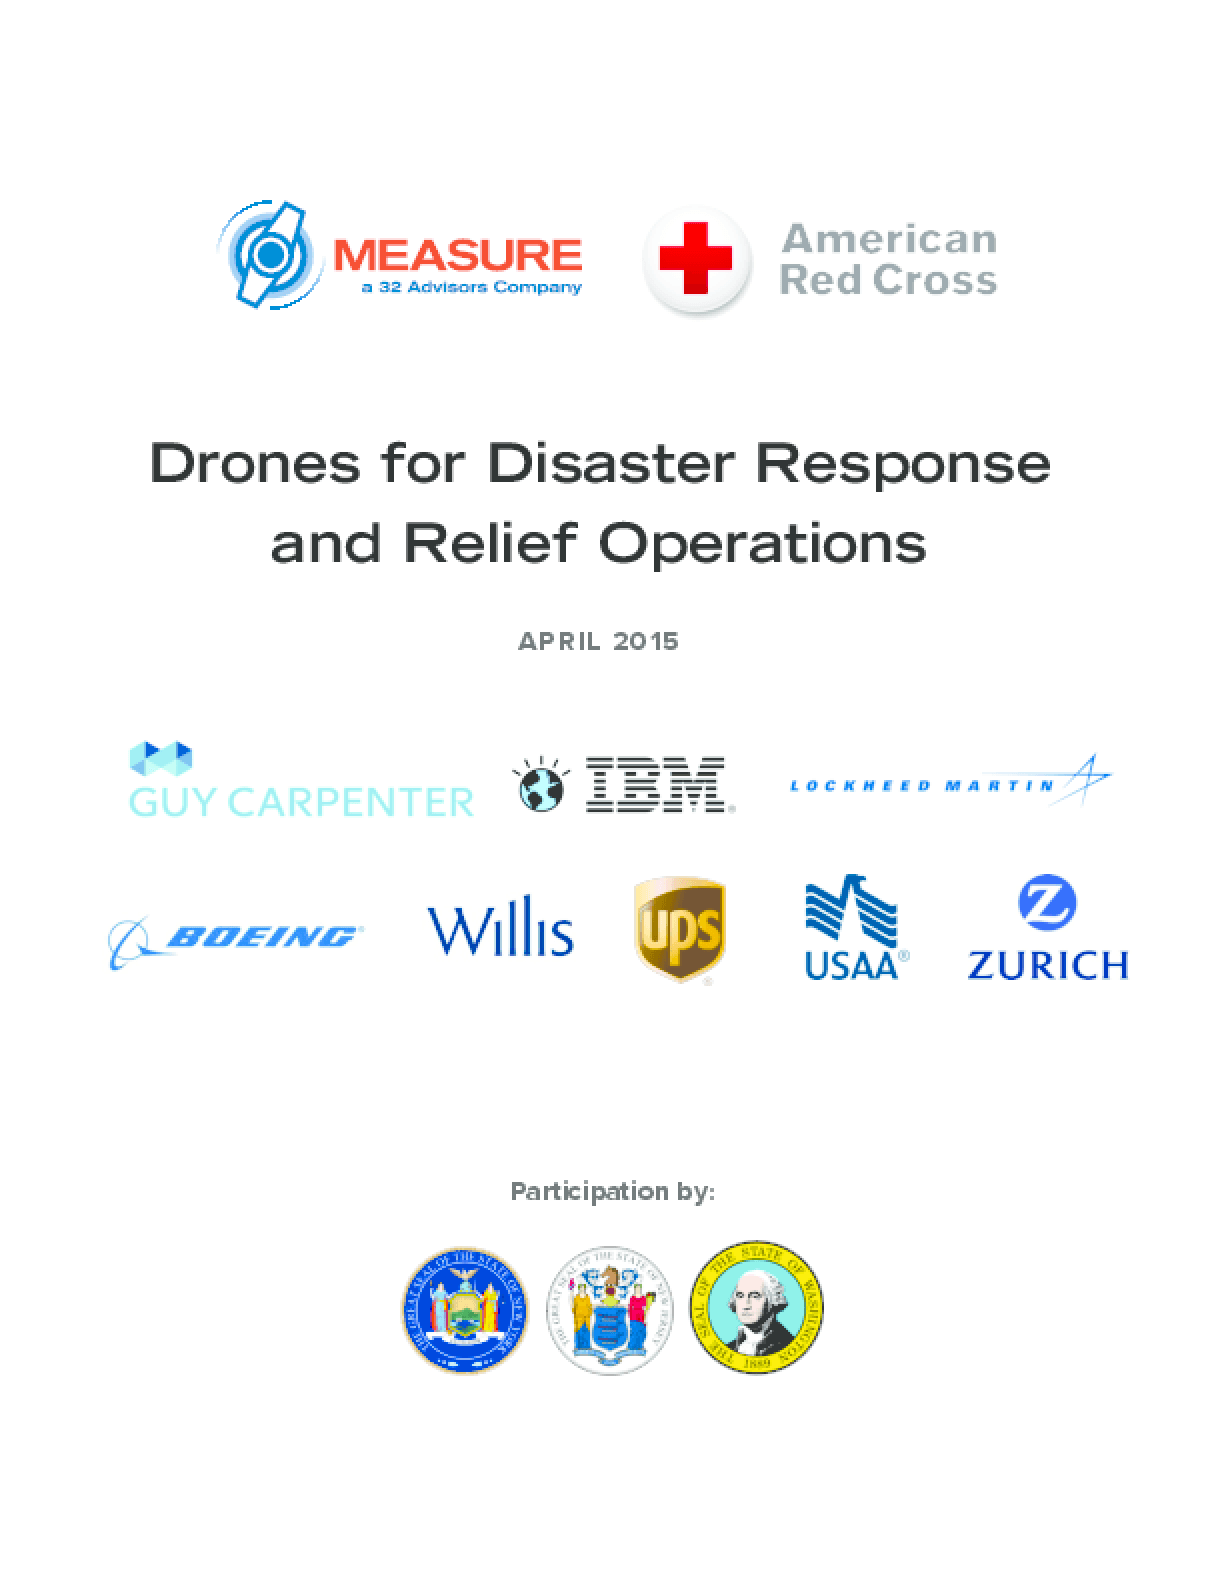 Drones for Disaster Response and Relief Operations - IssueLab